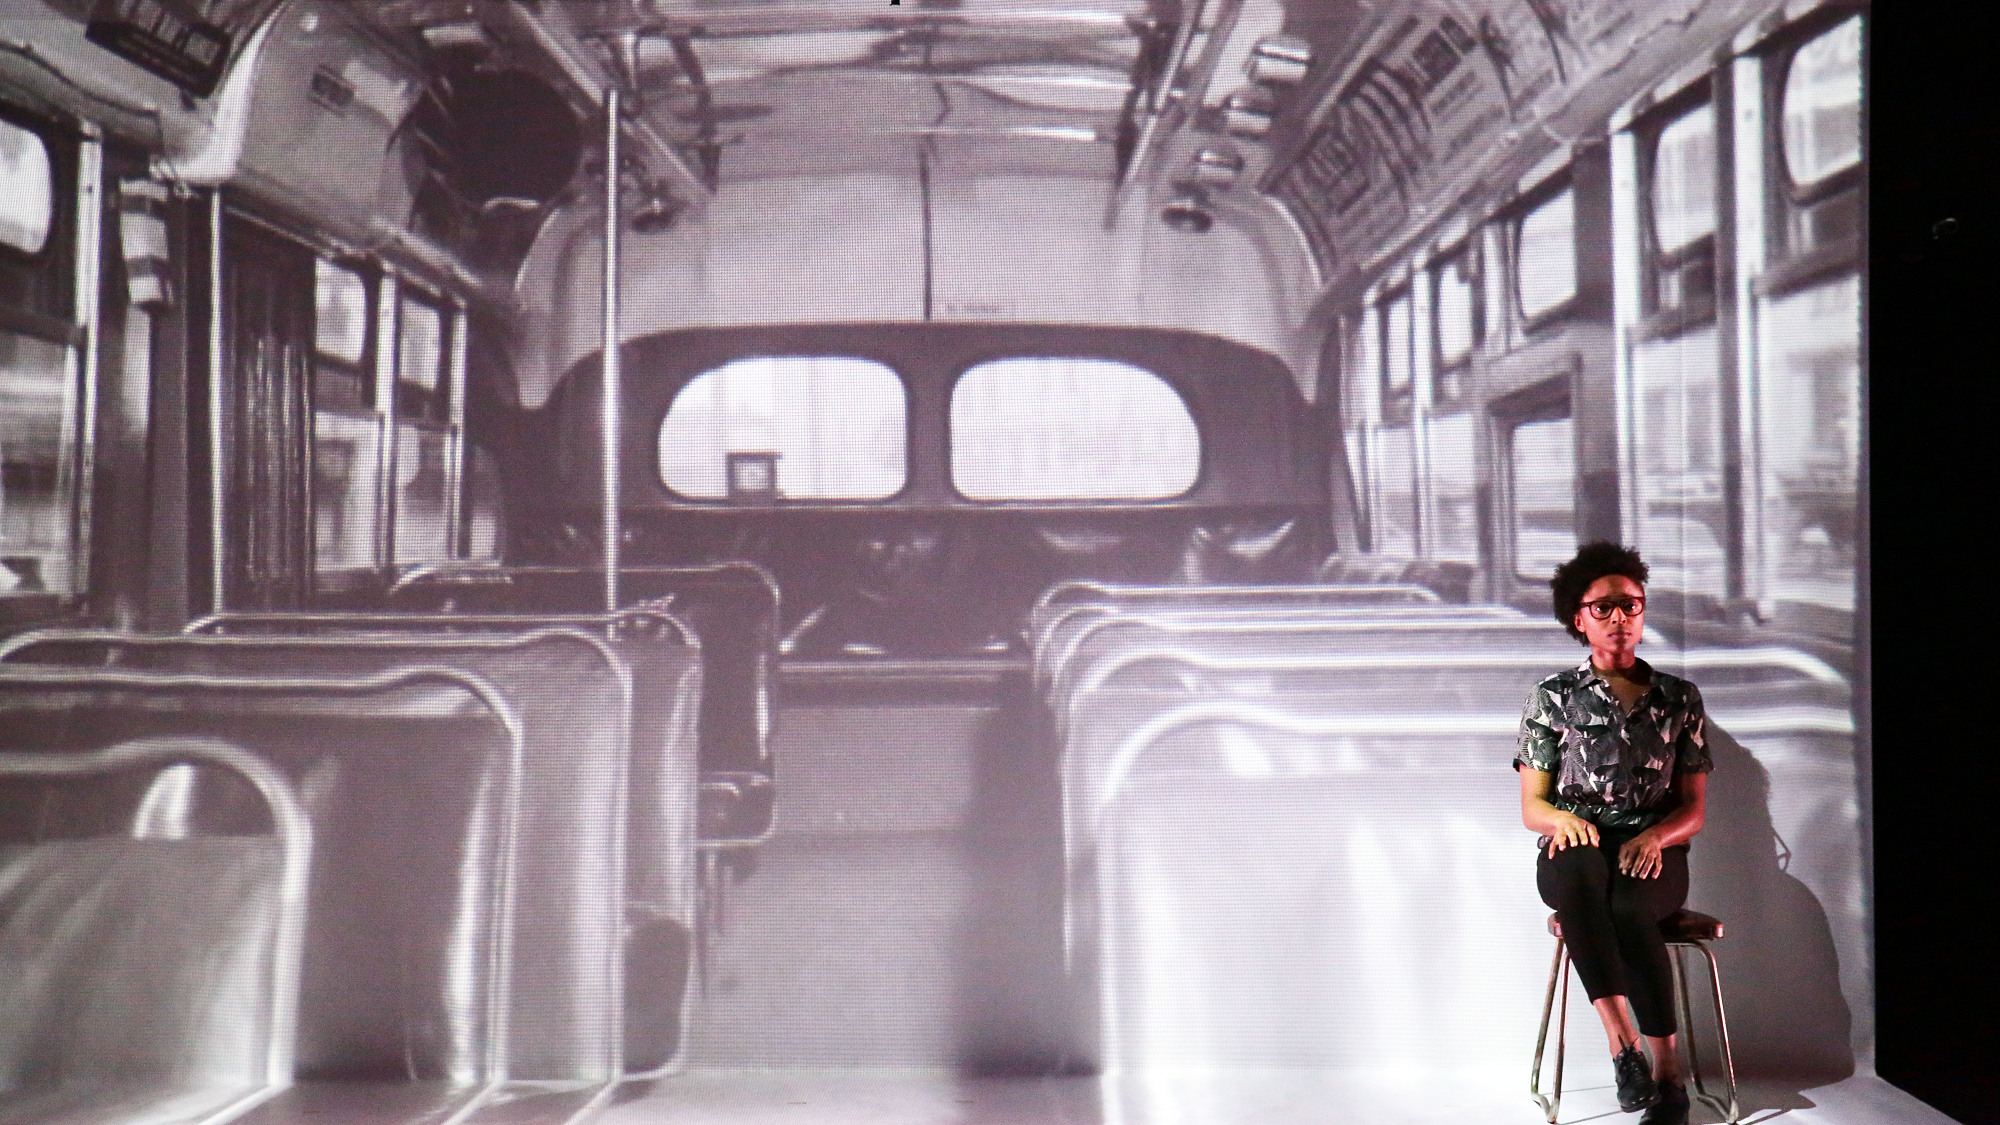 In 1955, 15-year-old Claudette Colvin refused to give up her seat to a white woman on a bus in Montgomery, Alabama.